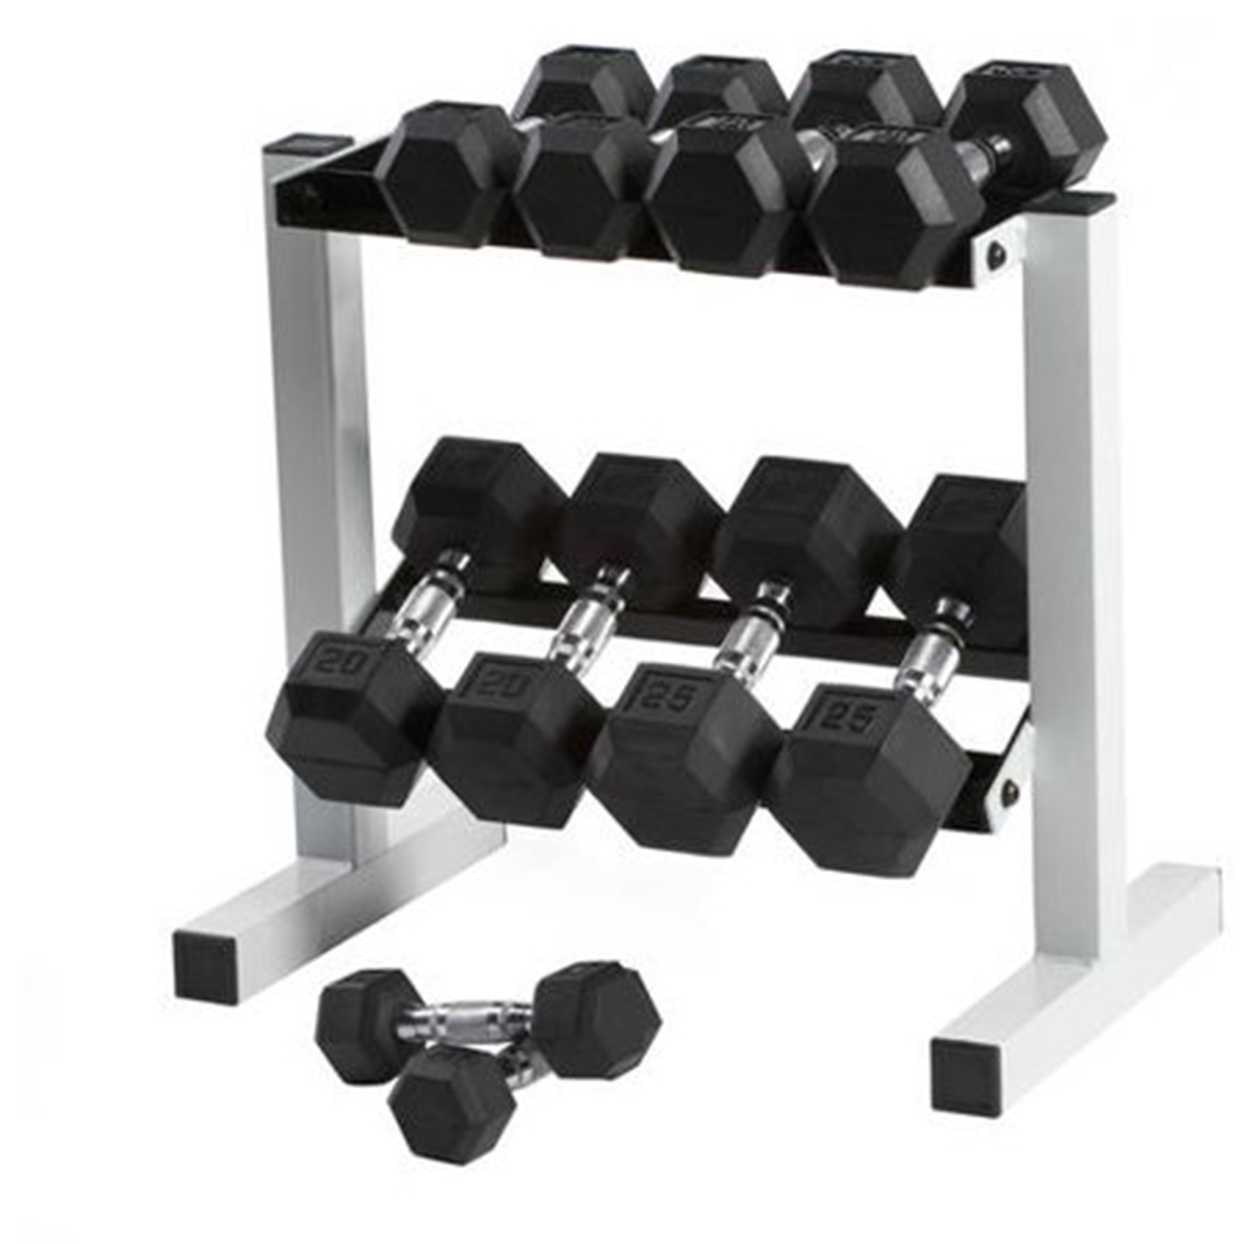 CAP 150 lb. Rubber Hex Dumbbell Weight Set